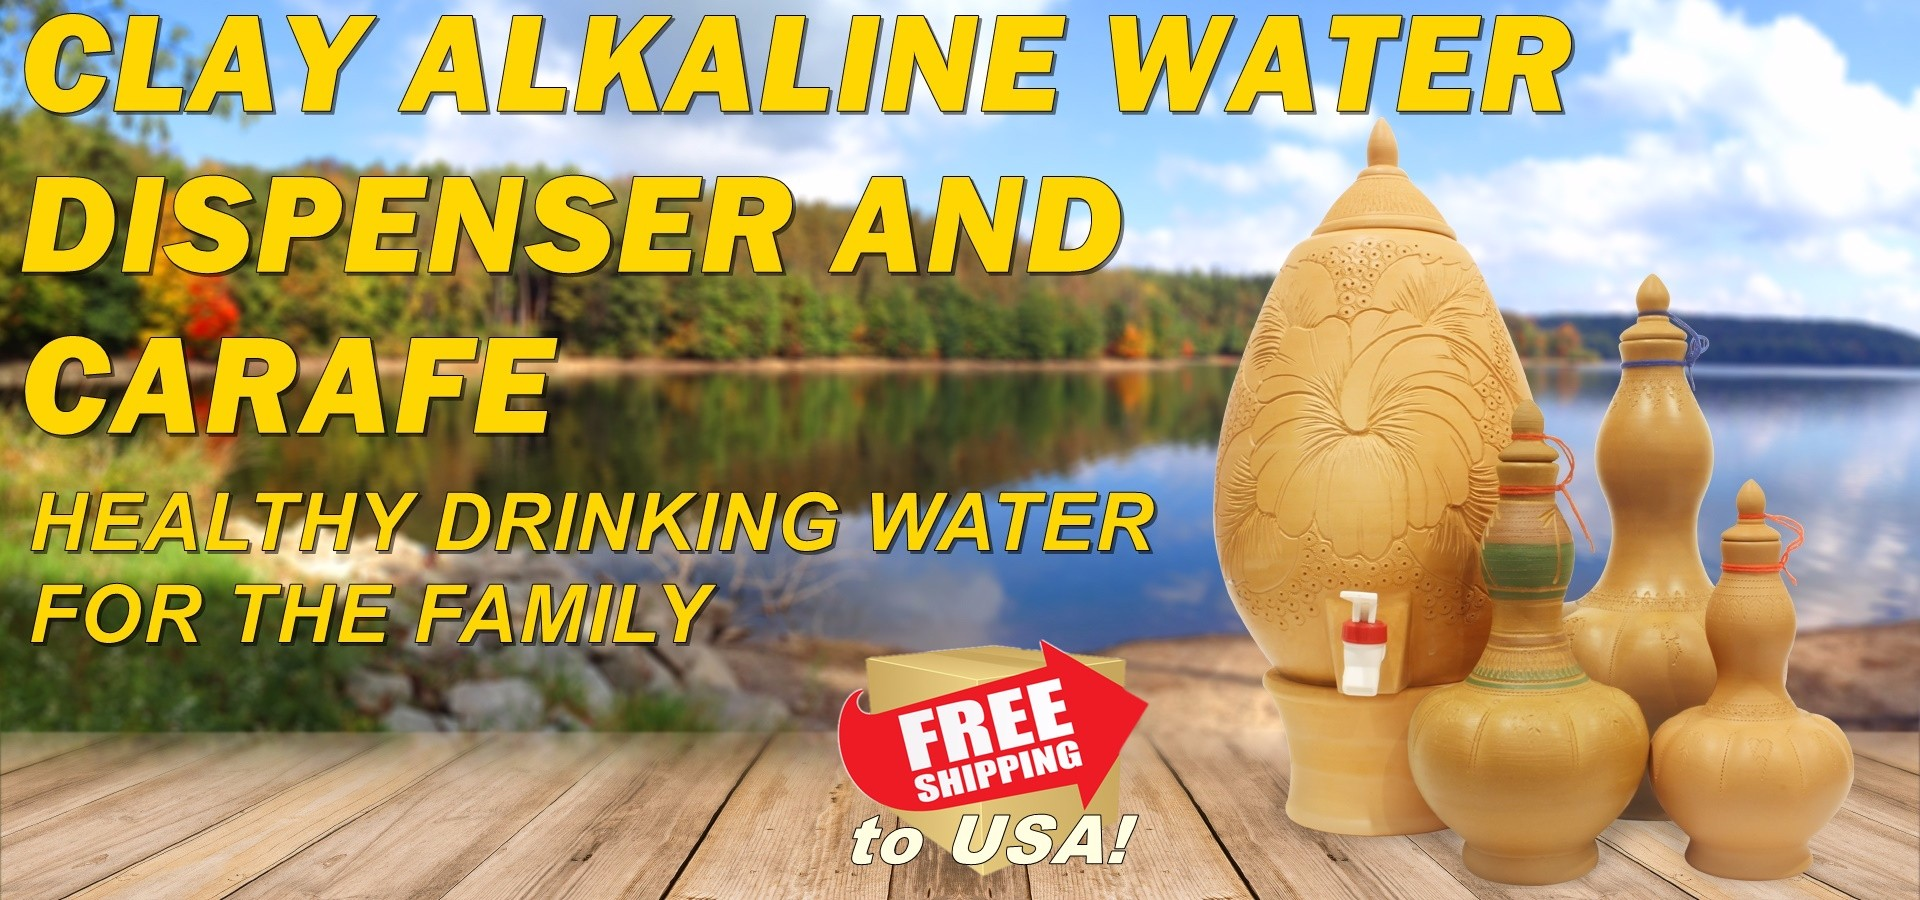 clay earthen water dispenser water crock alkaline water